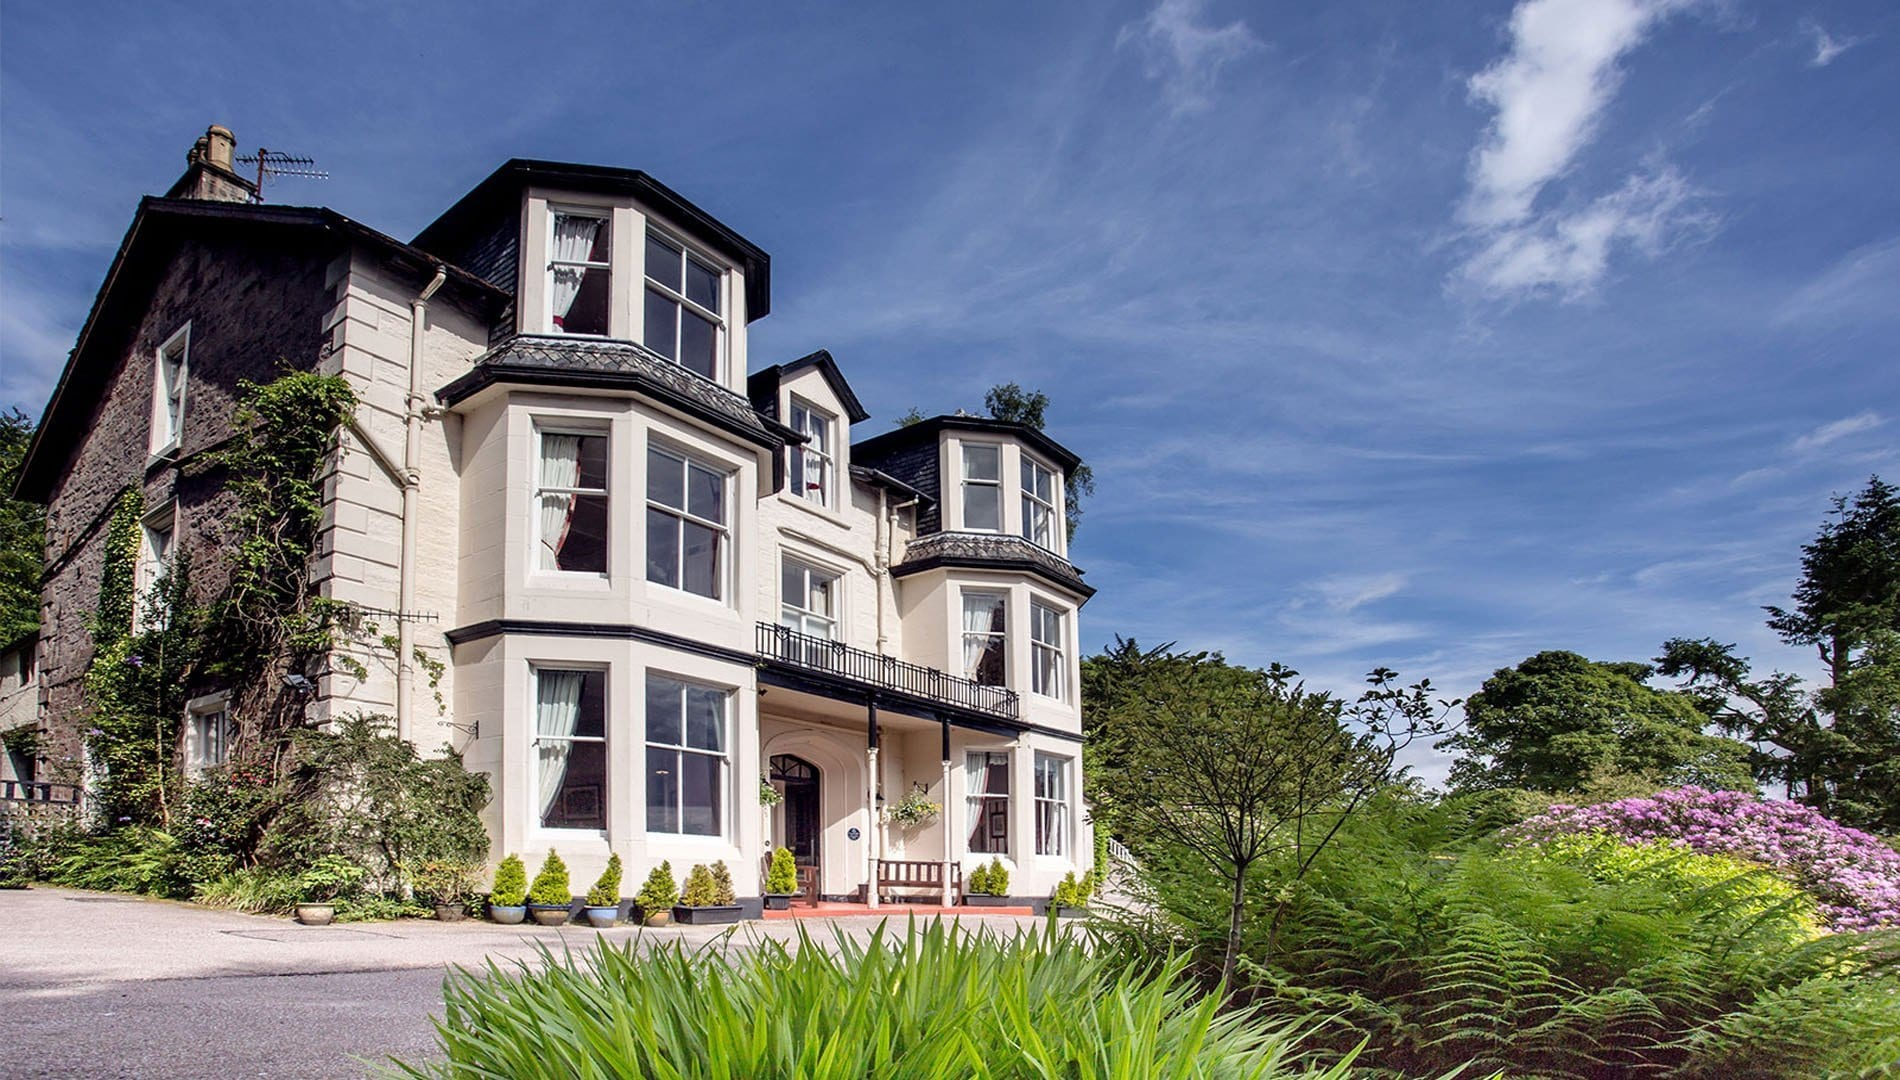 abbots brae is one of the top hotels in dunoon